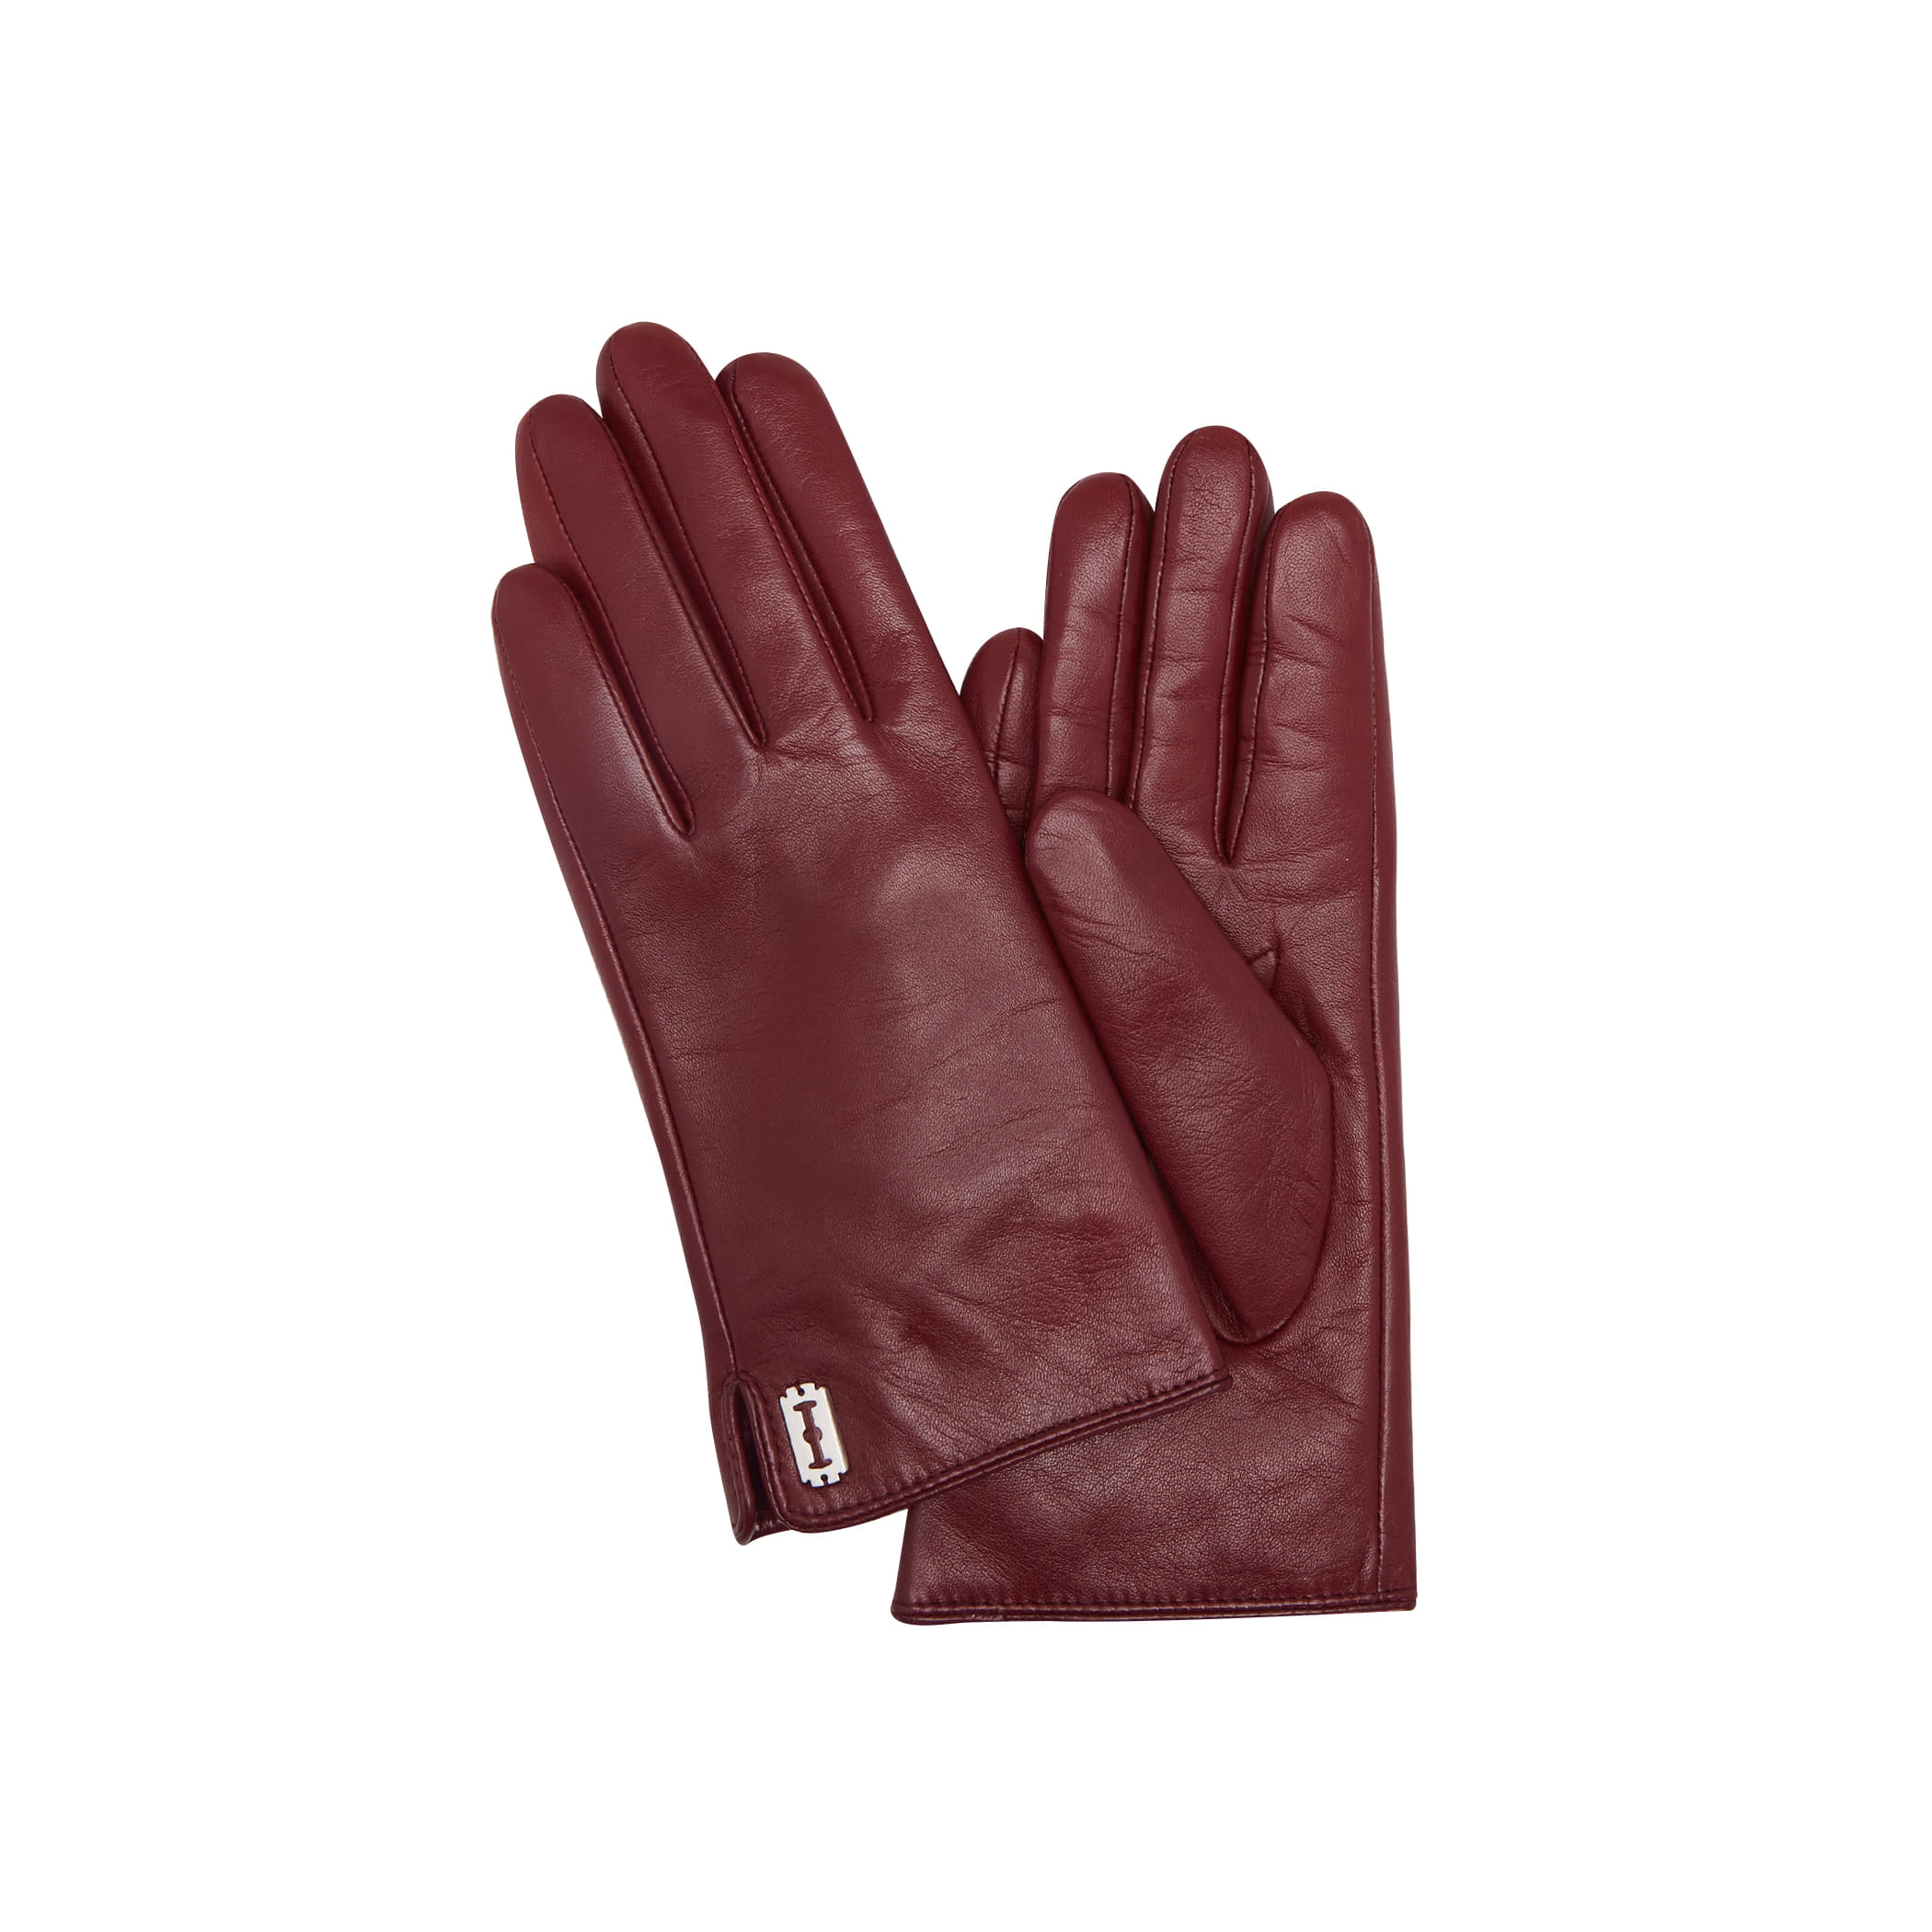 Toque Leather Gloves (토크 레더 장갑) Wine